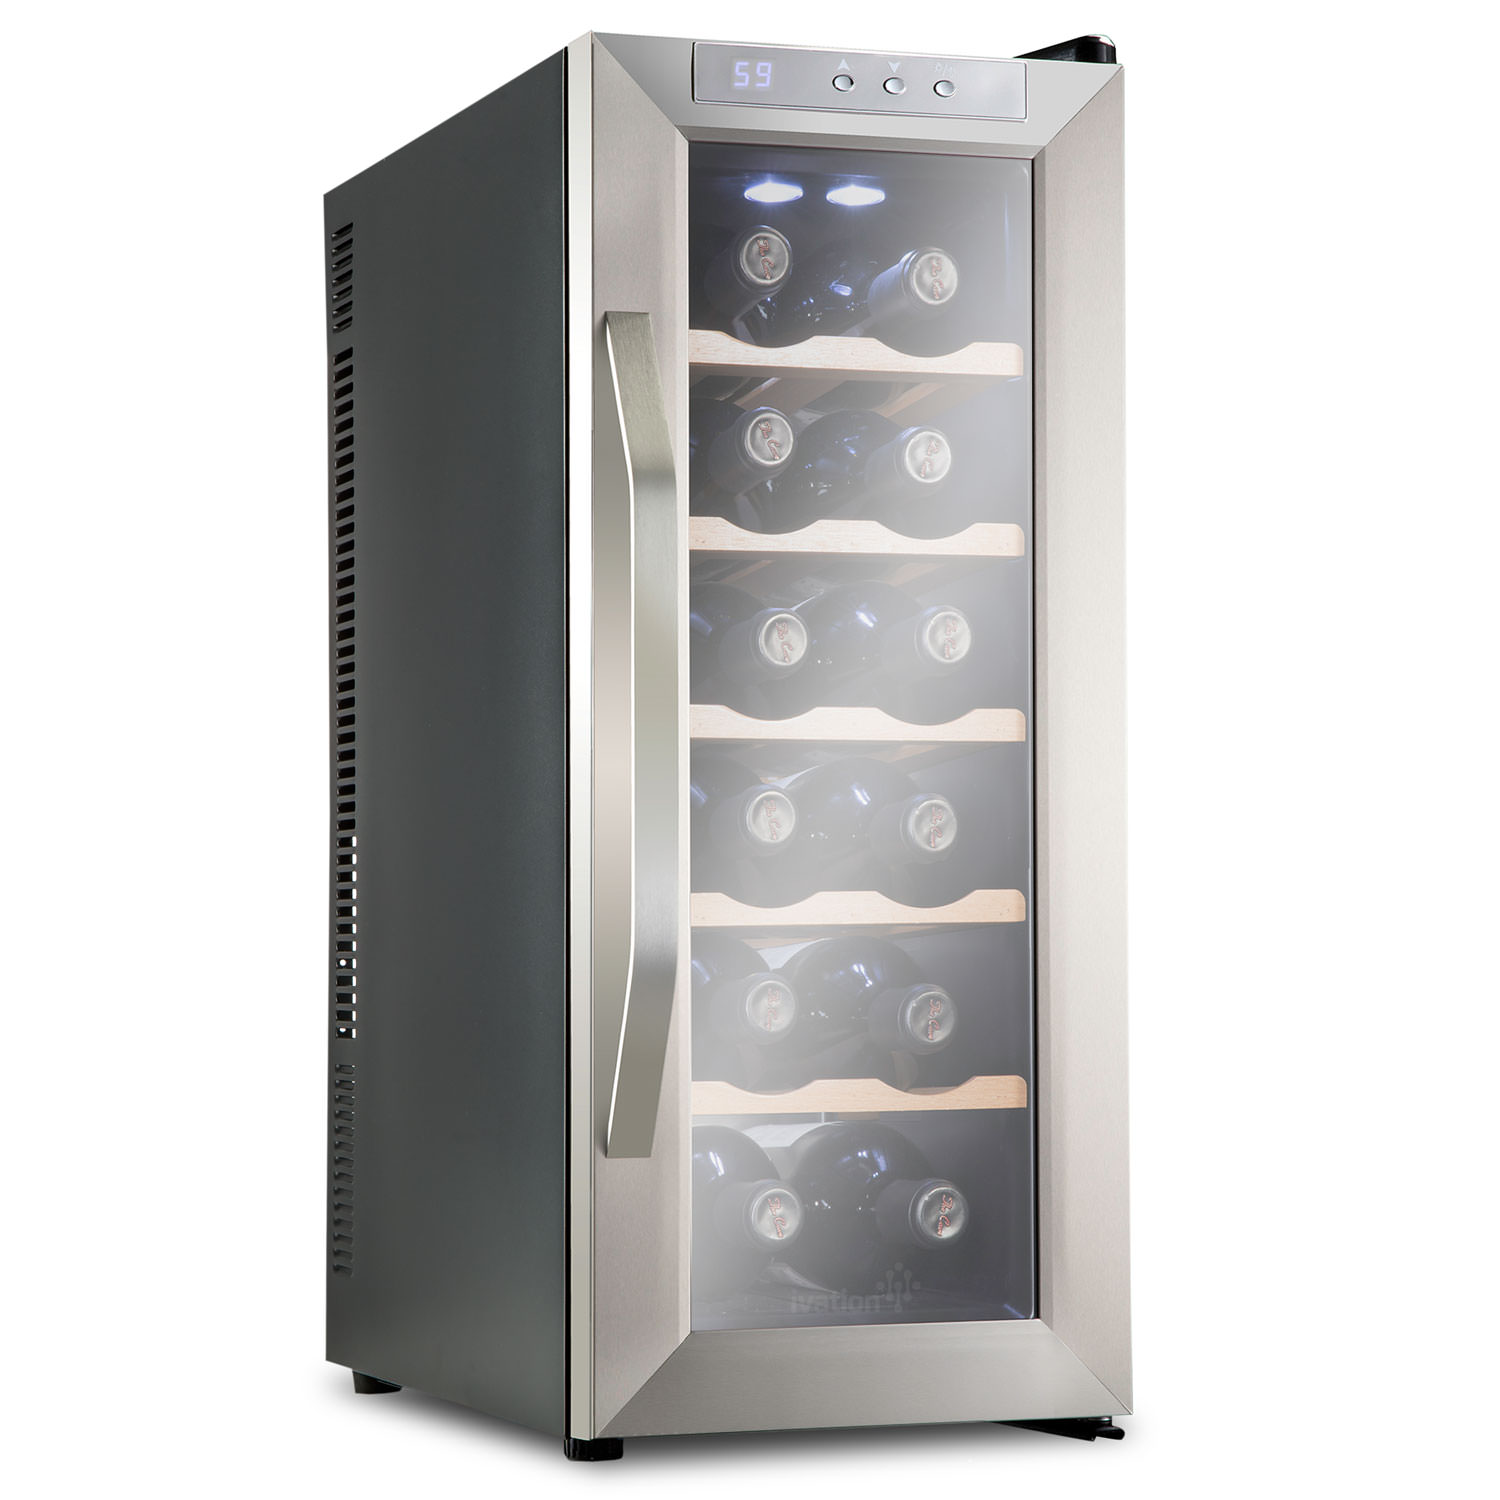 Ivation 12 Bottle Premium Thermoelectric Freestanding Wine Cooler/Fridge - Stainless Steel with Wood Shelves